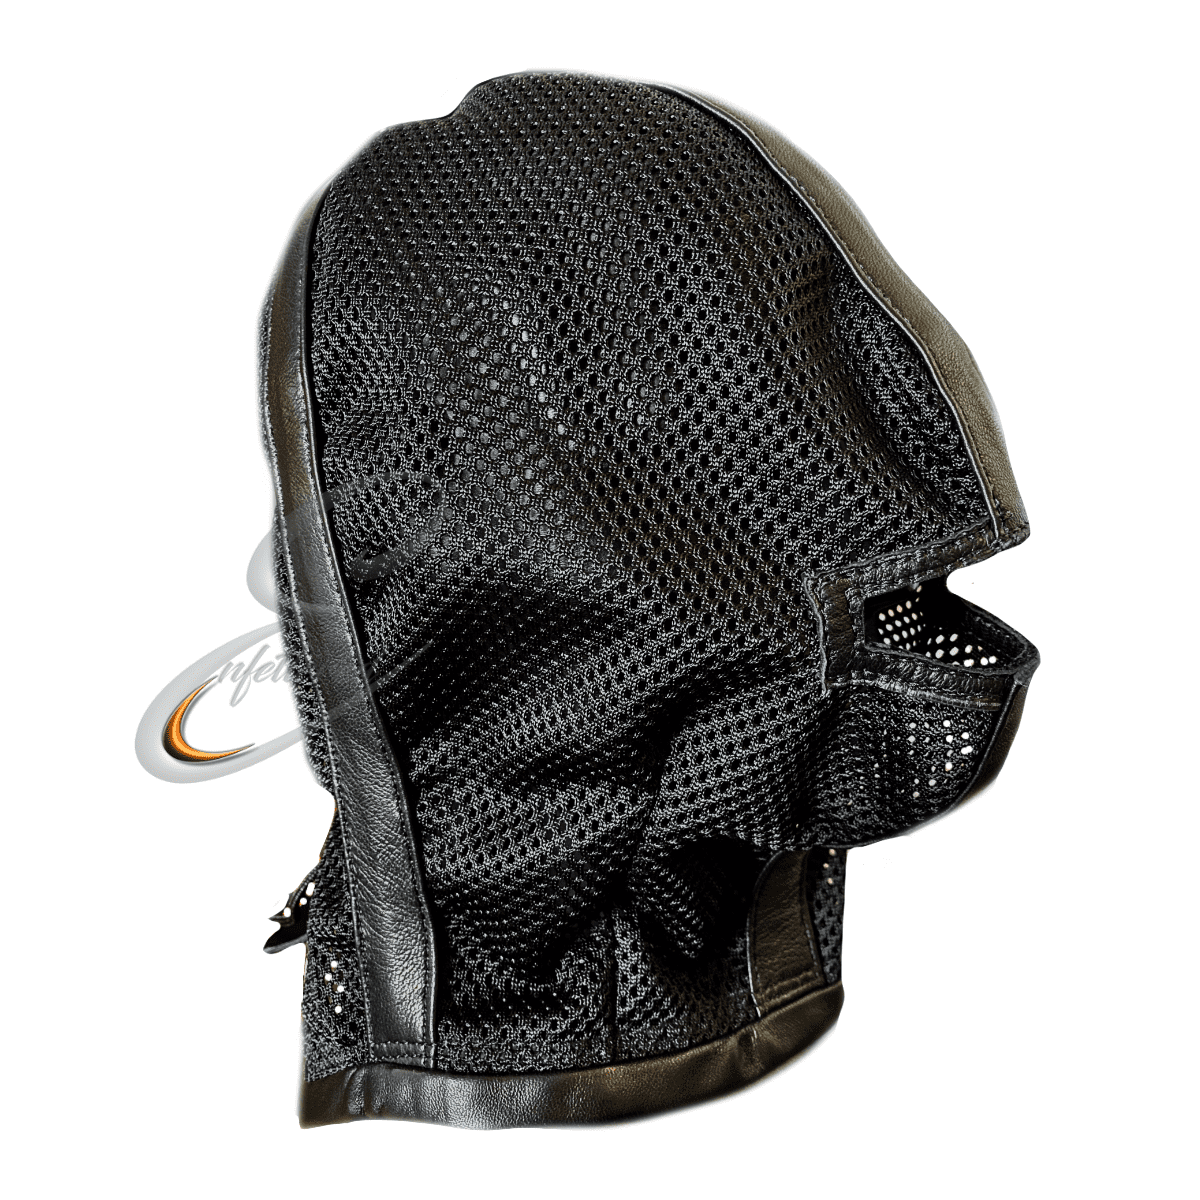 Enfettered Mesh Hood with Mouth Opening